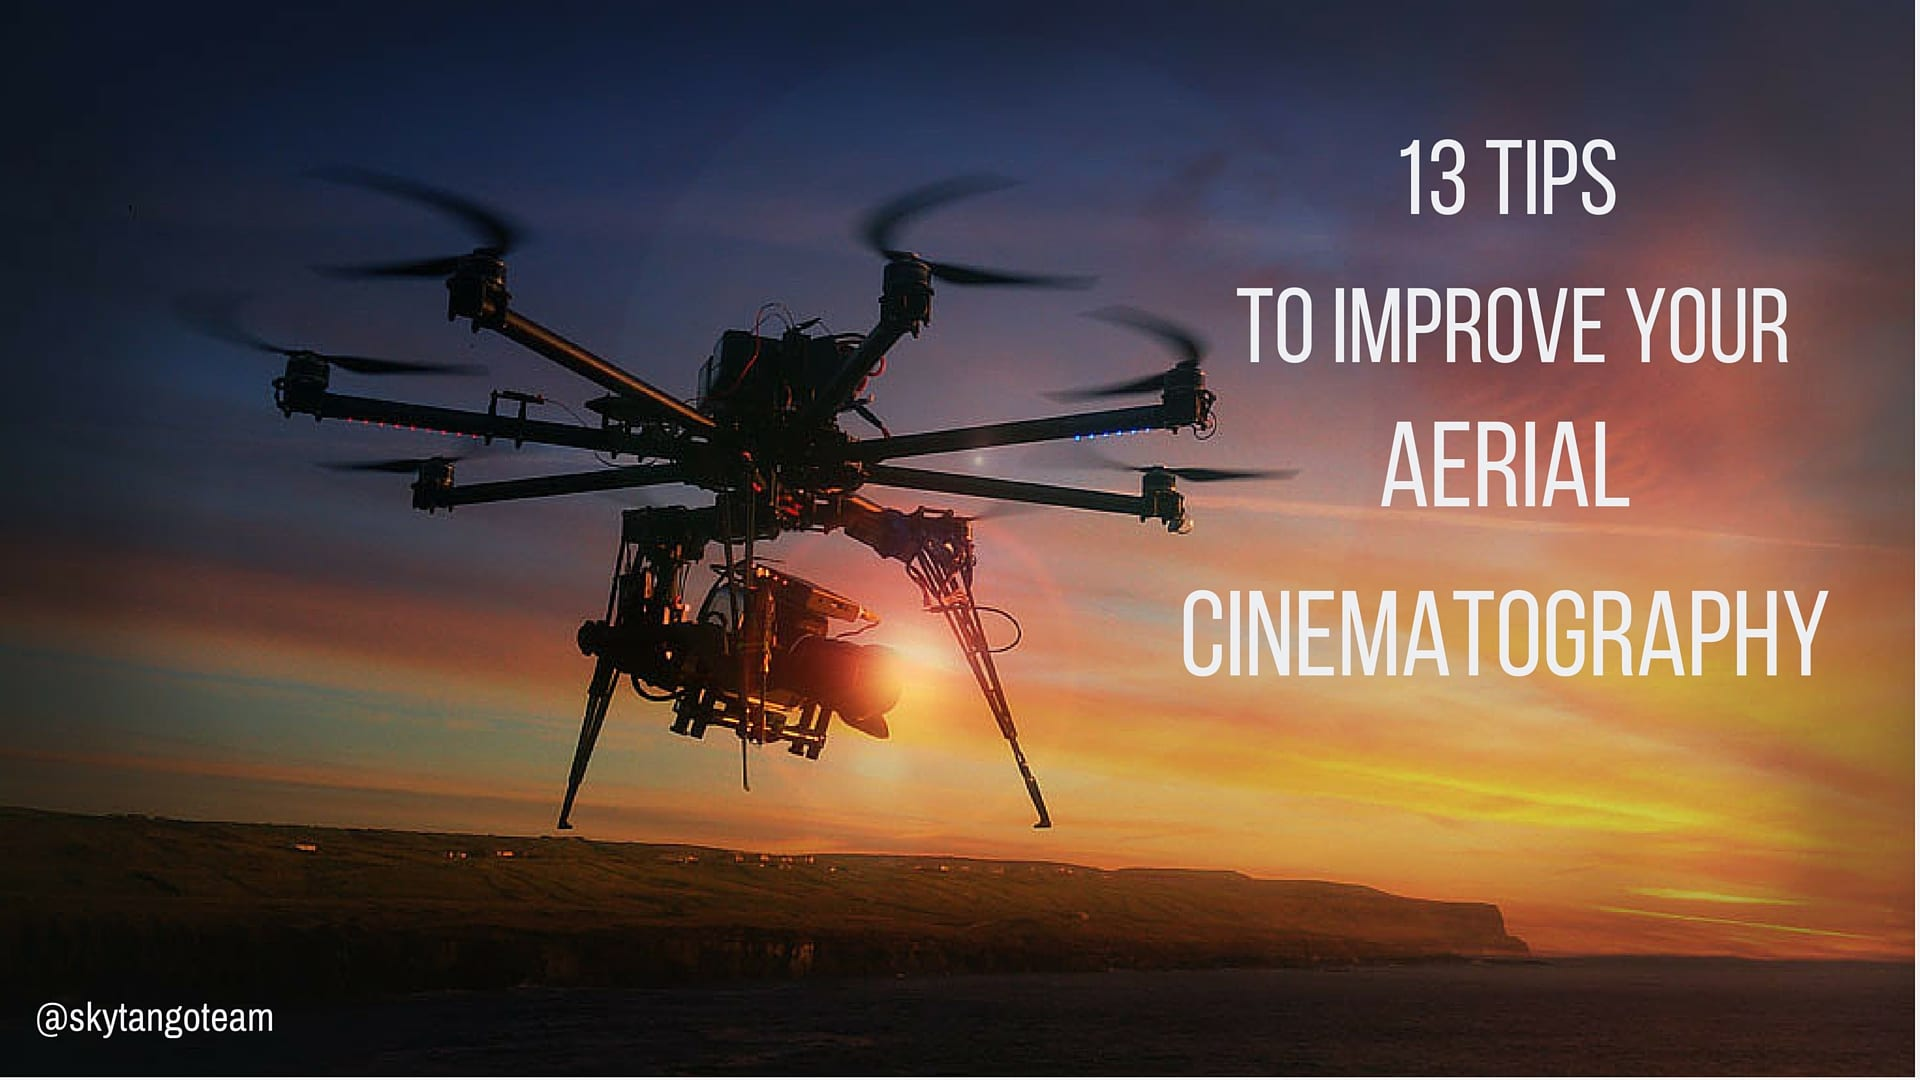 13 Powerful Tips to Improve Your Aerial Cinematography